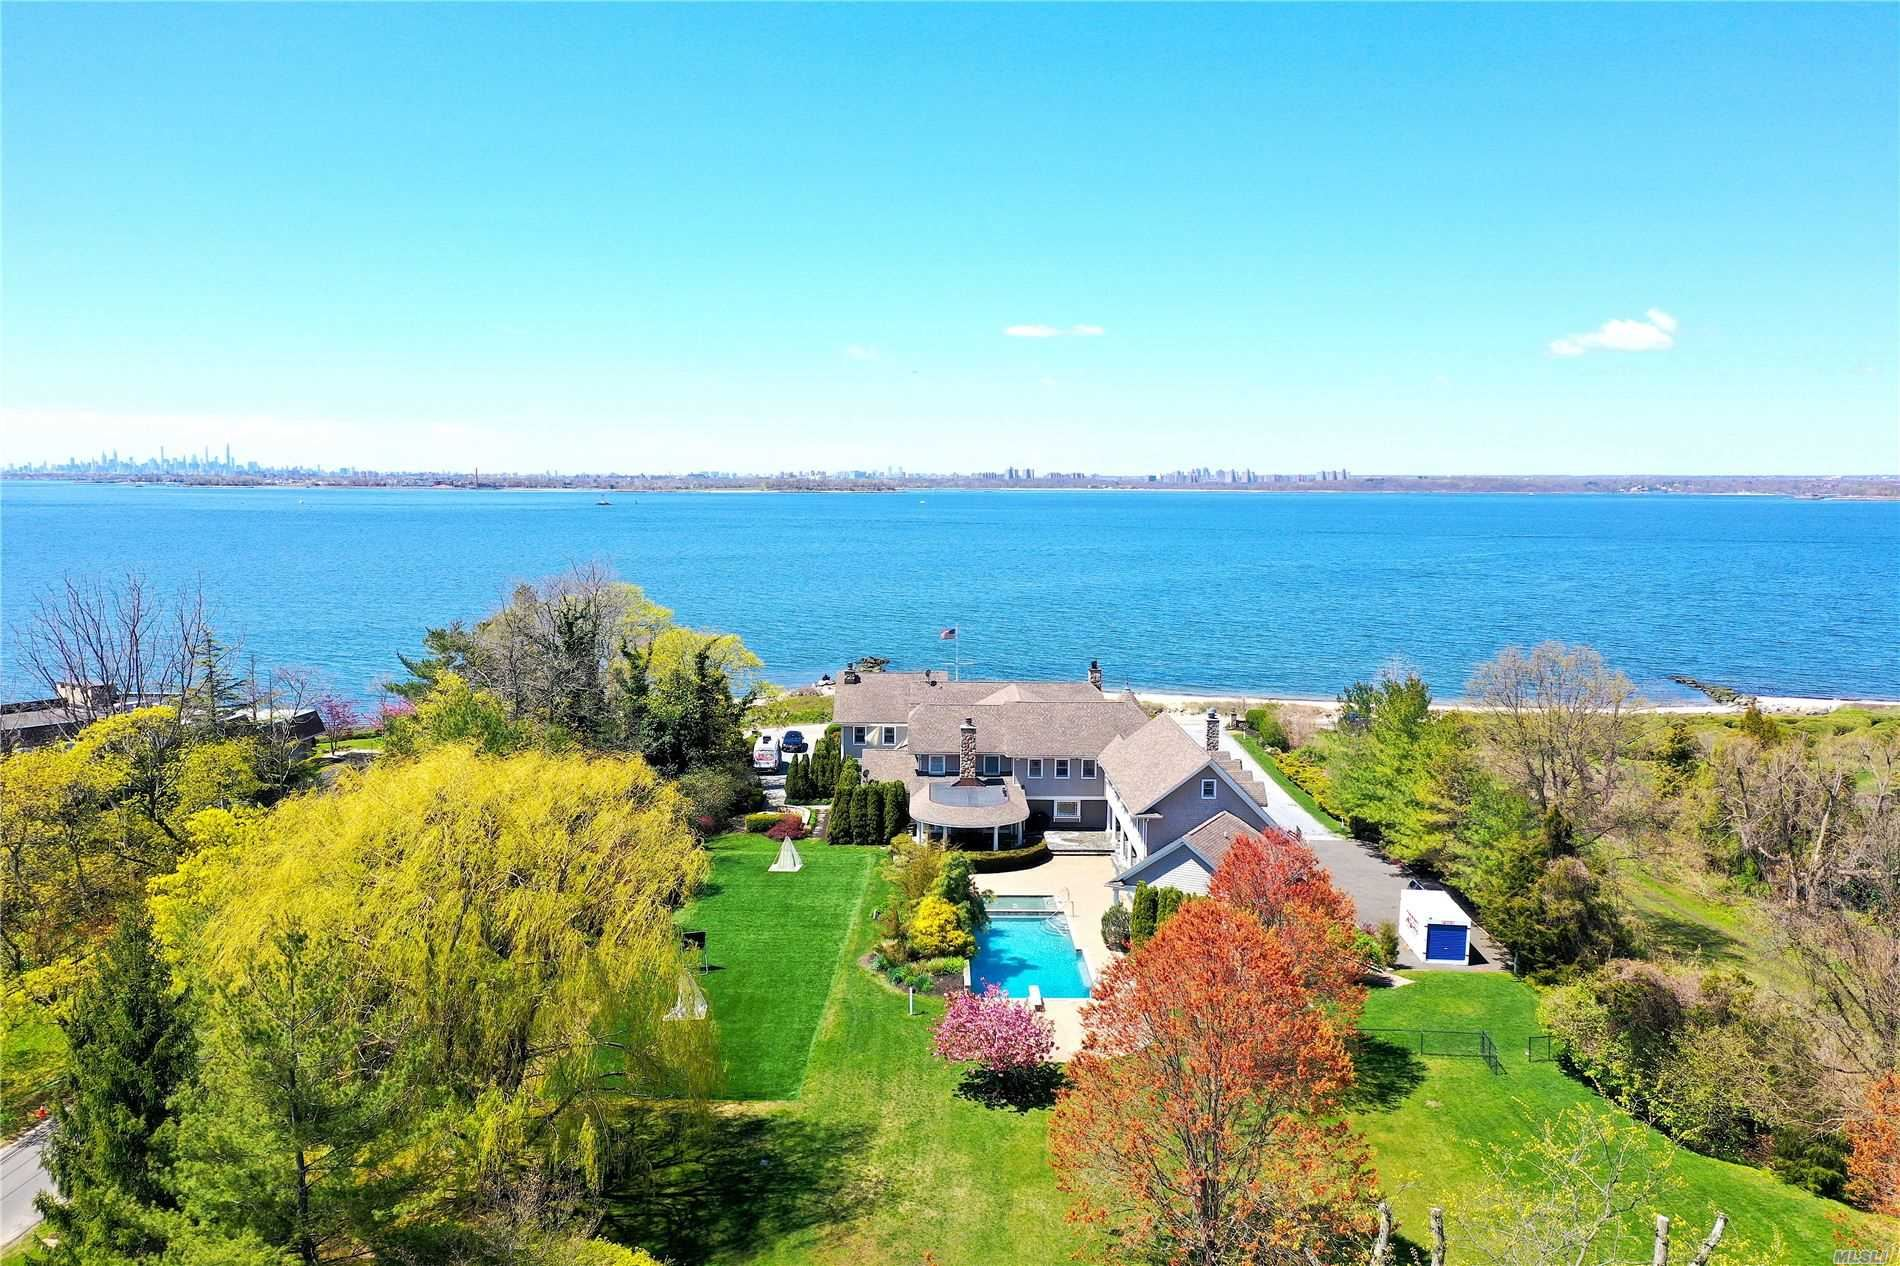 17 Lighthouse Road, Sands Point, NY 11050 - MLS#: 3192205